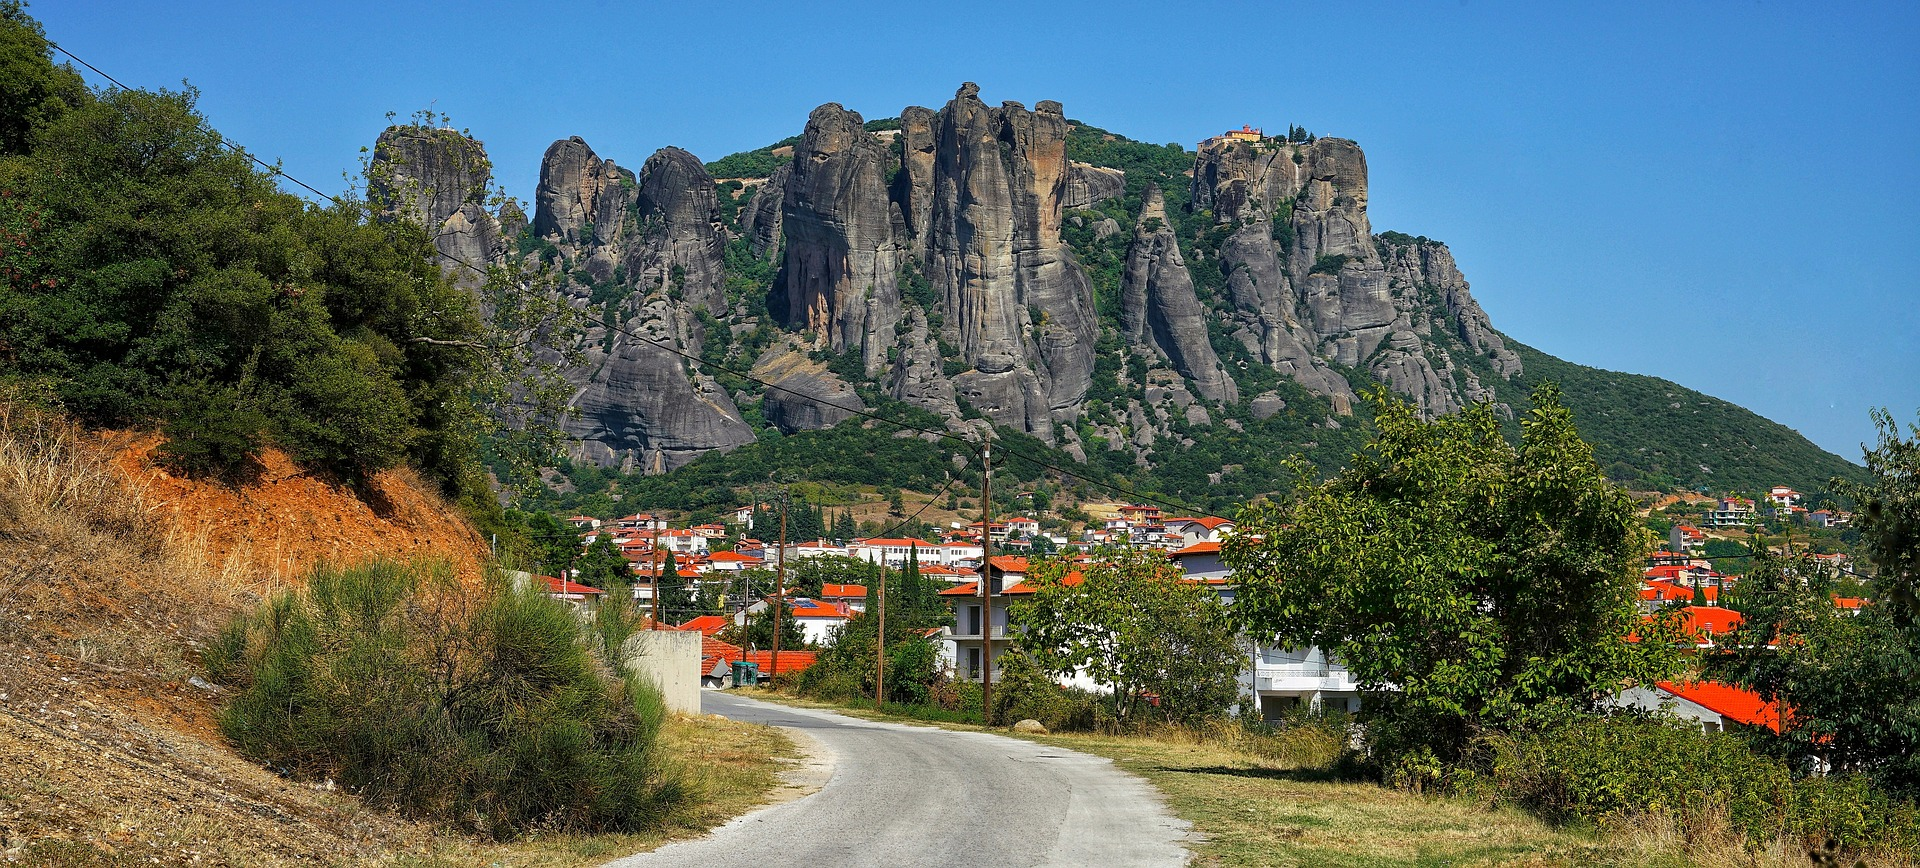 The Meteora is a rock formation in central Greece